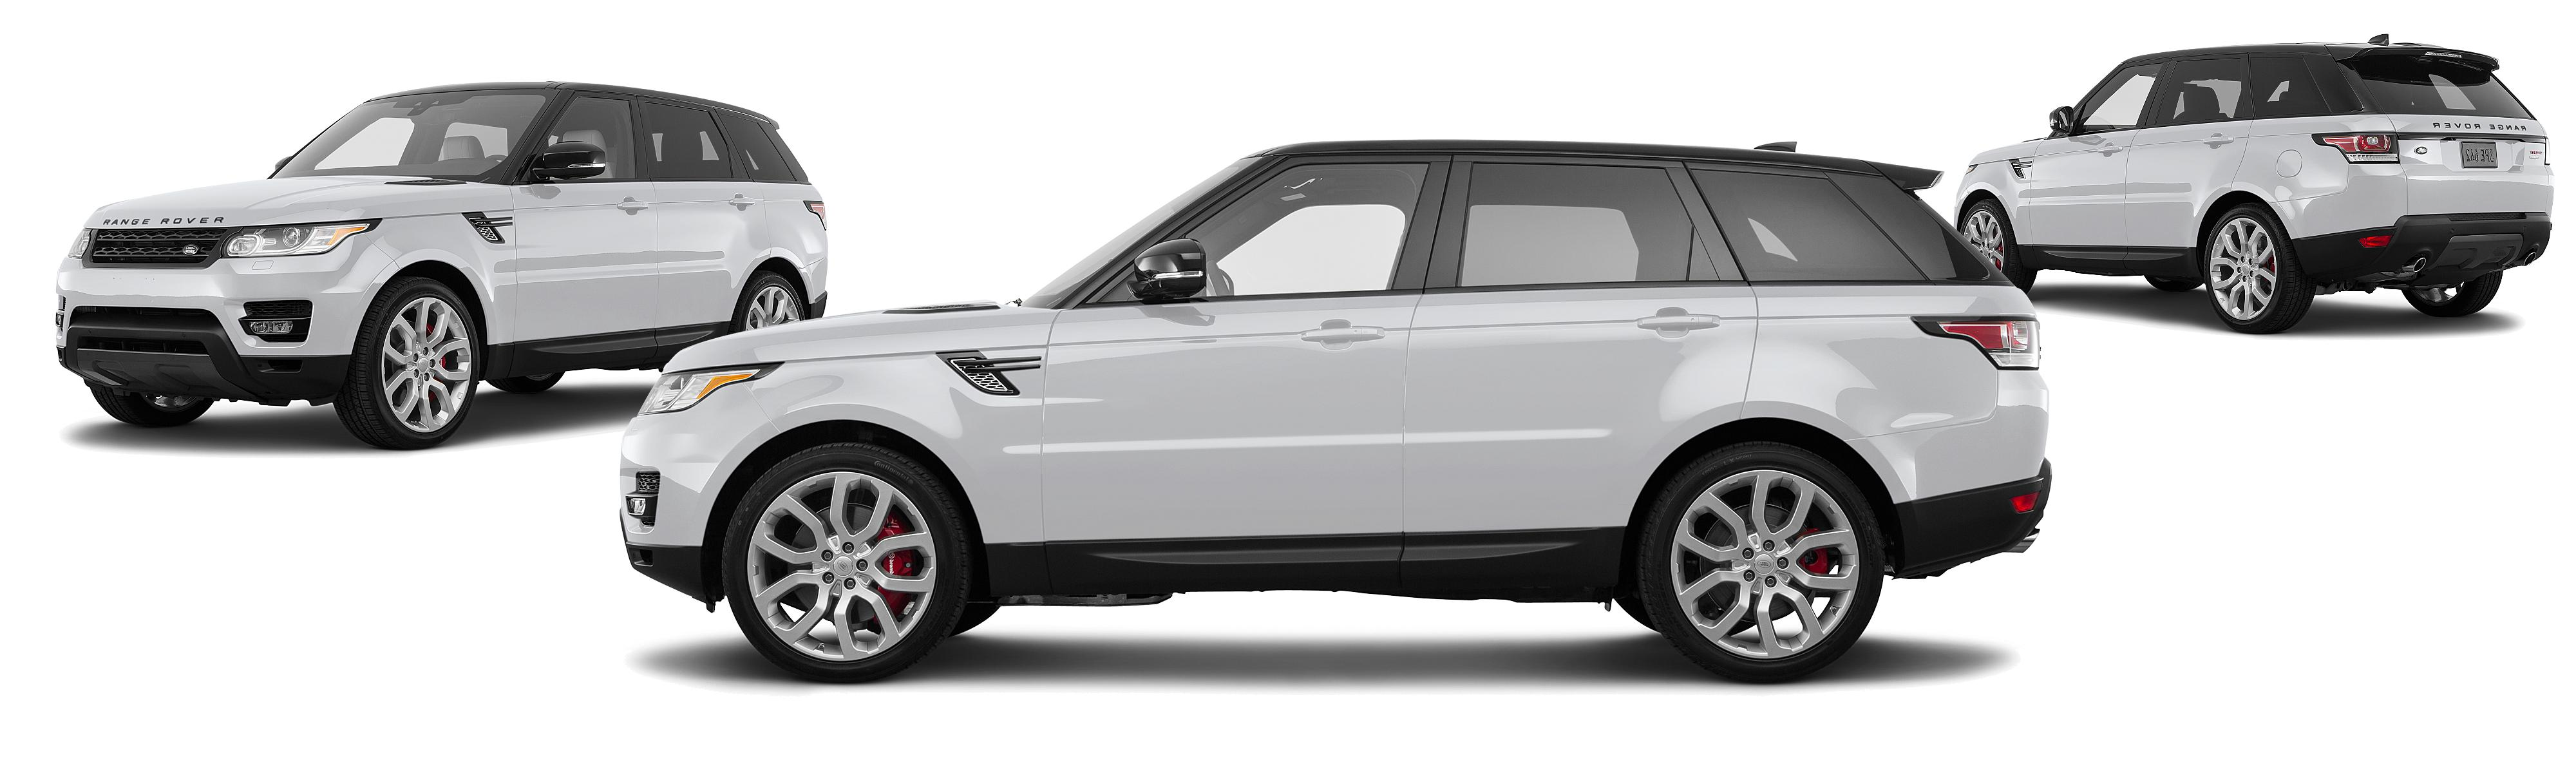 2017 Land Rover Range Rover Sport AWD SVR 4dr SUV Research